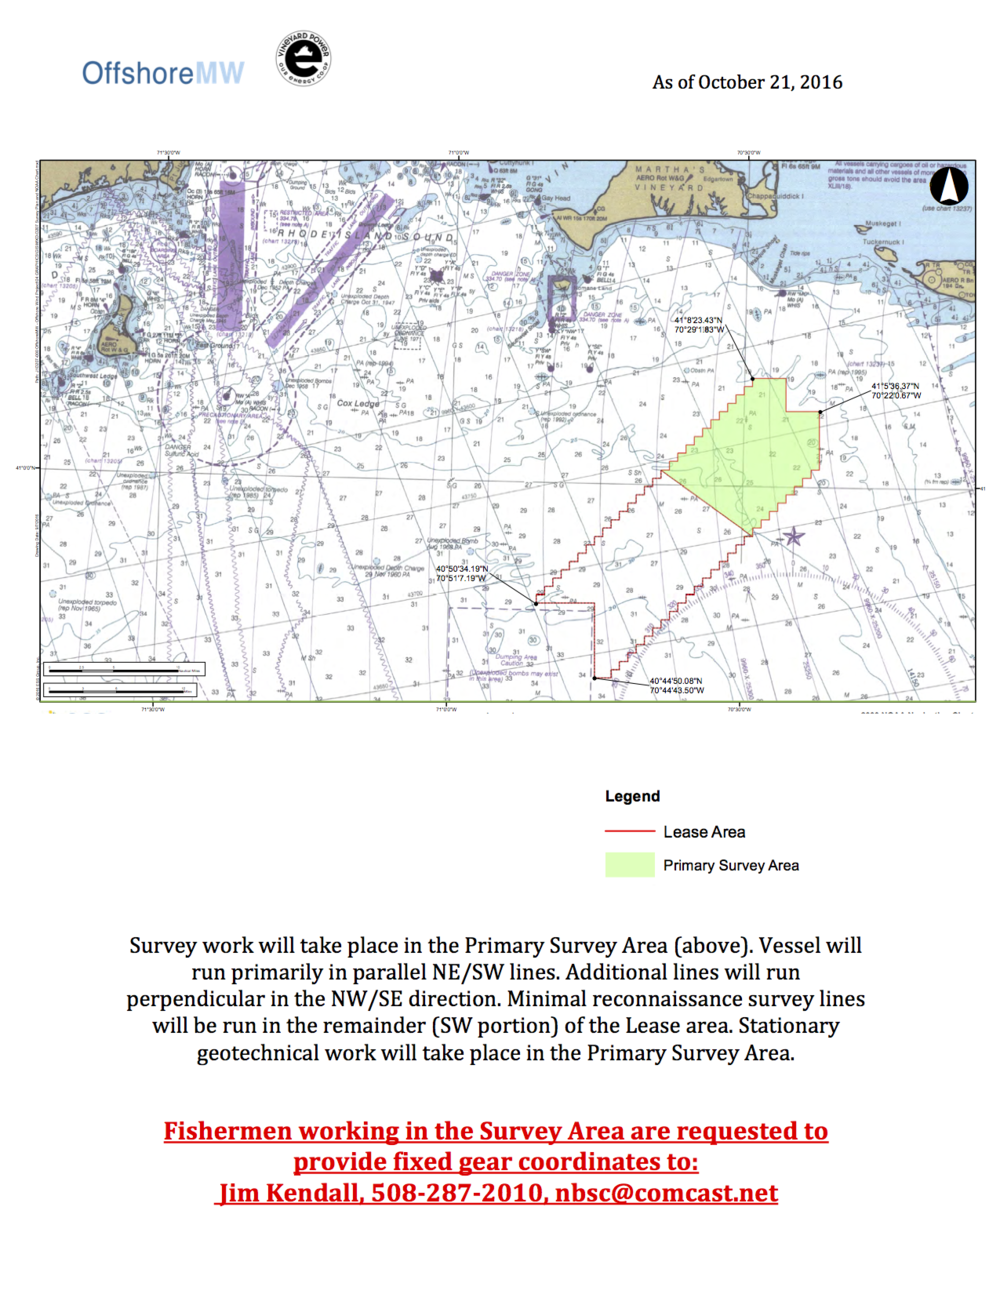 OffshoreMW_Notice_10.21.16-2.png